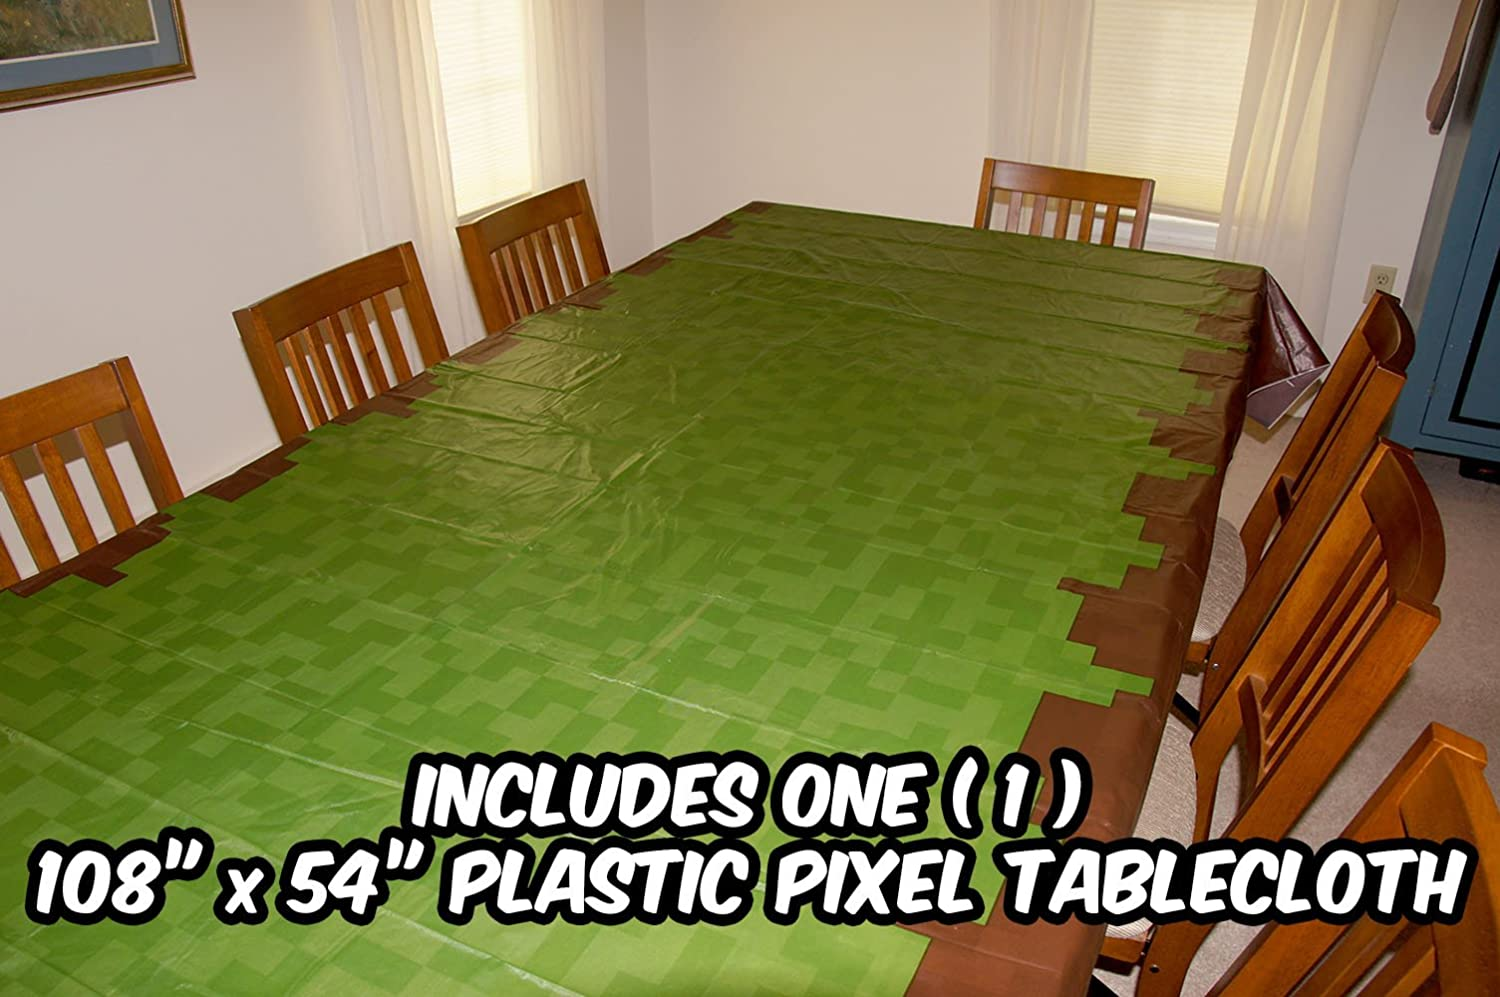 Wipes Clean in Seconds - Fun Made from Recycled Materials Parties+Toys Pixel Mine Crafter Style Party Tablecloth 108 x 54 Versatile Birthday Table Cover for Indoor or Outdoor Use